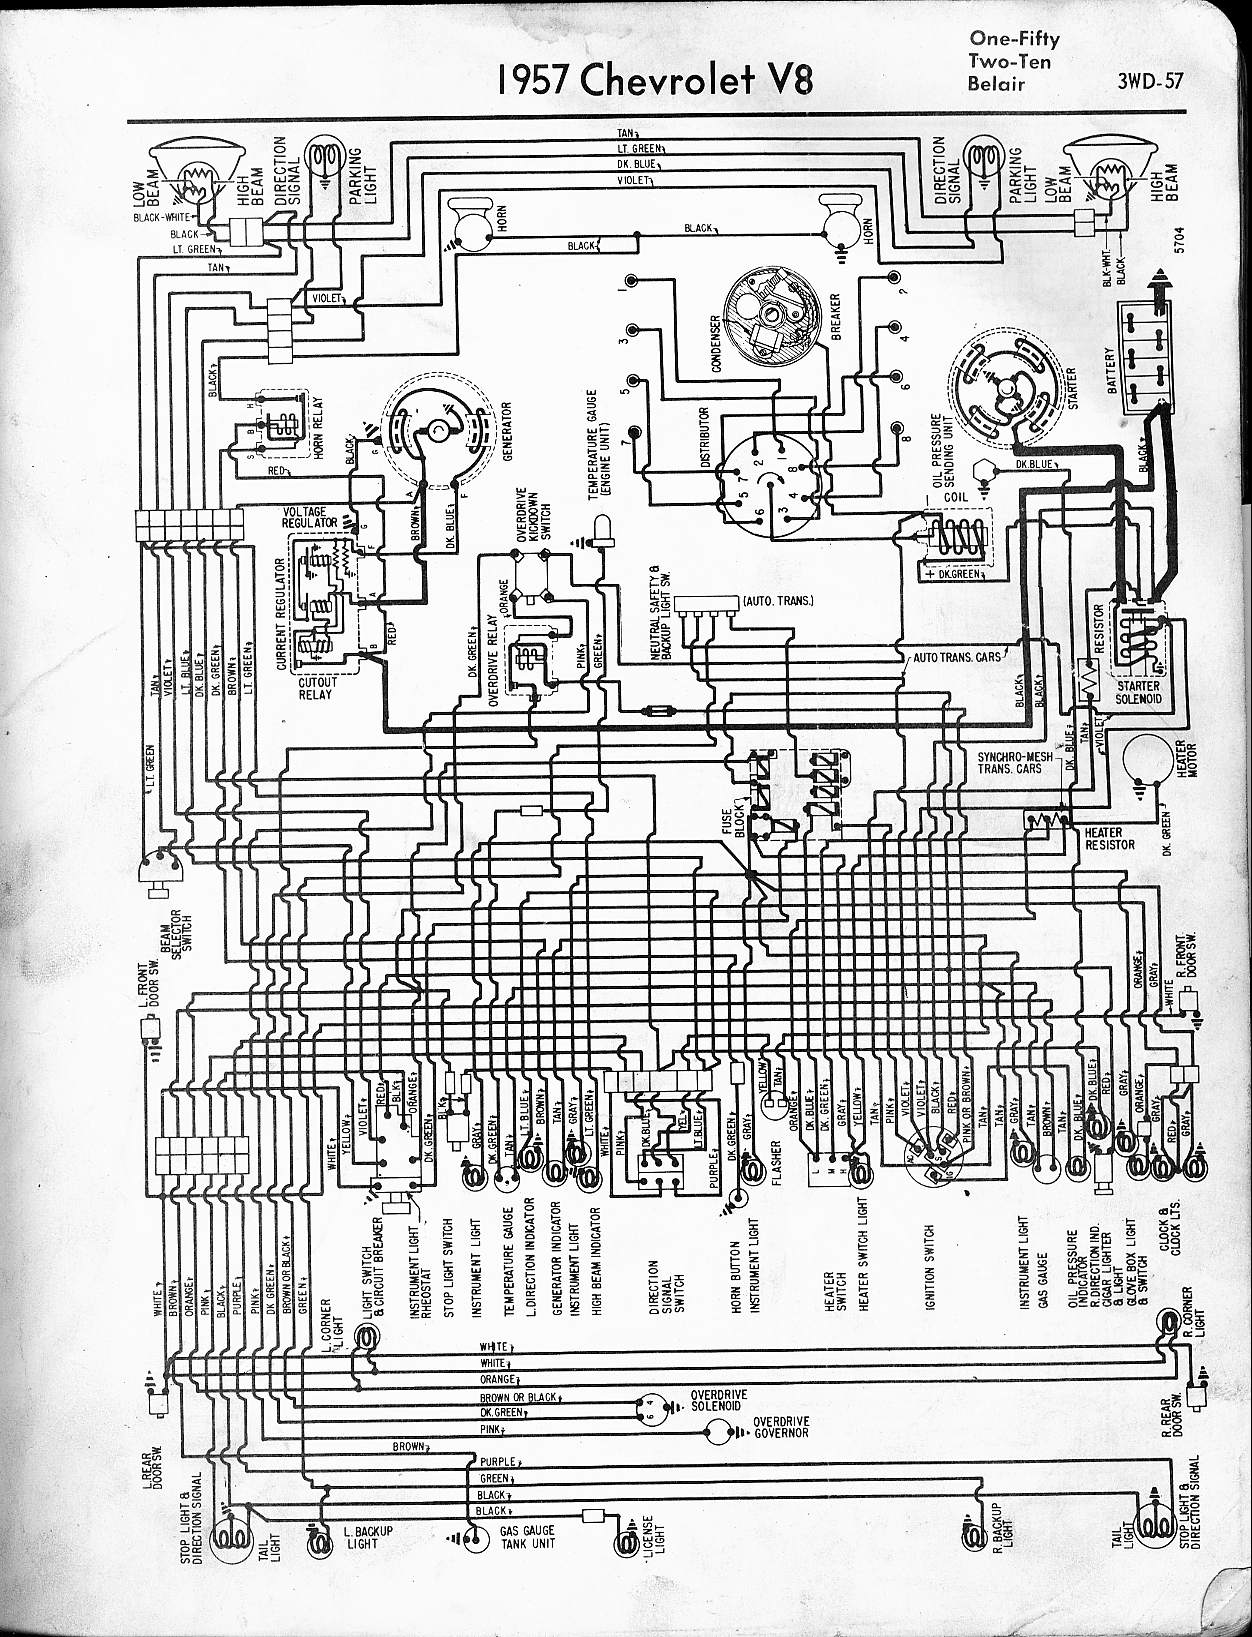 57 Chevy Wiring Harness Diagram Data 1968 C10 Pickup 1957 Chevrolet Library 65 Diagrams